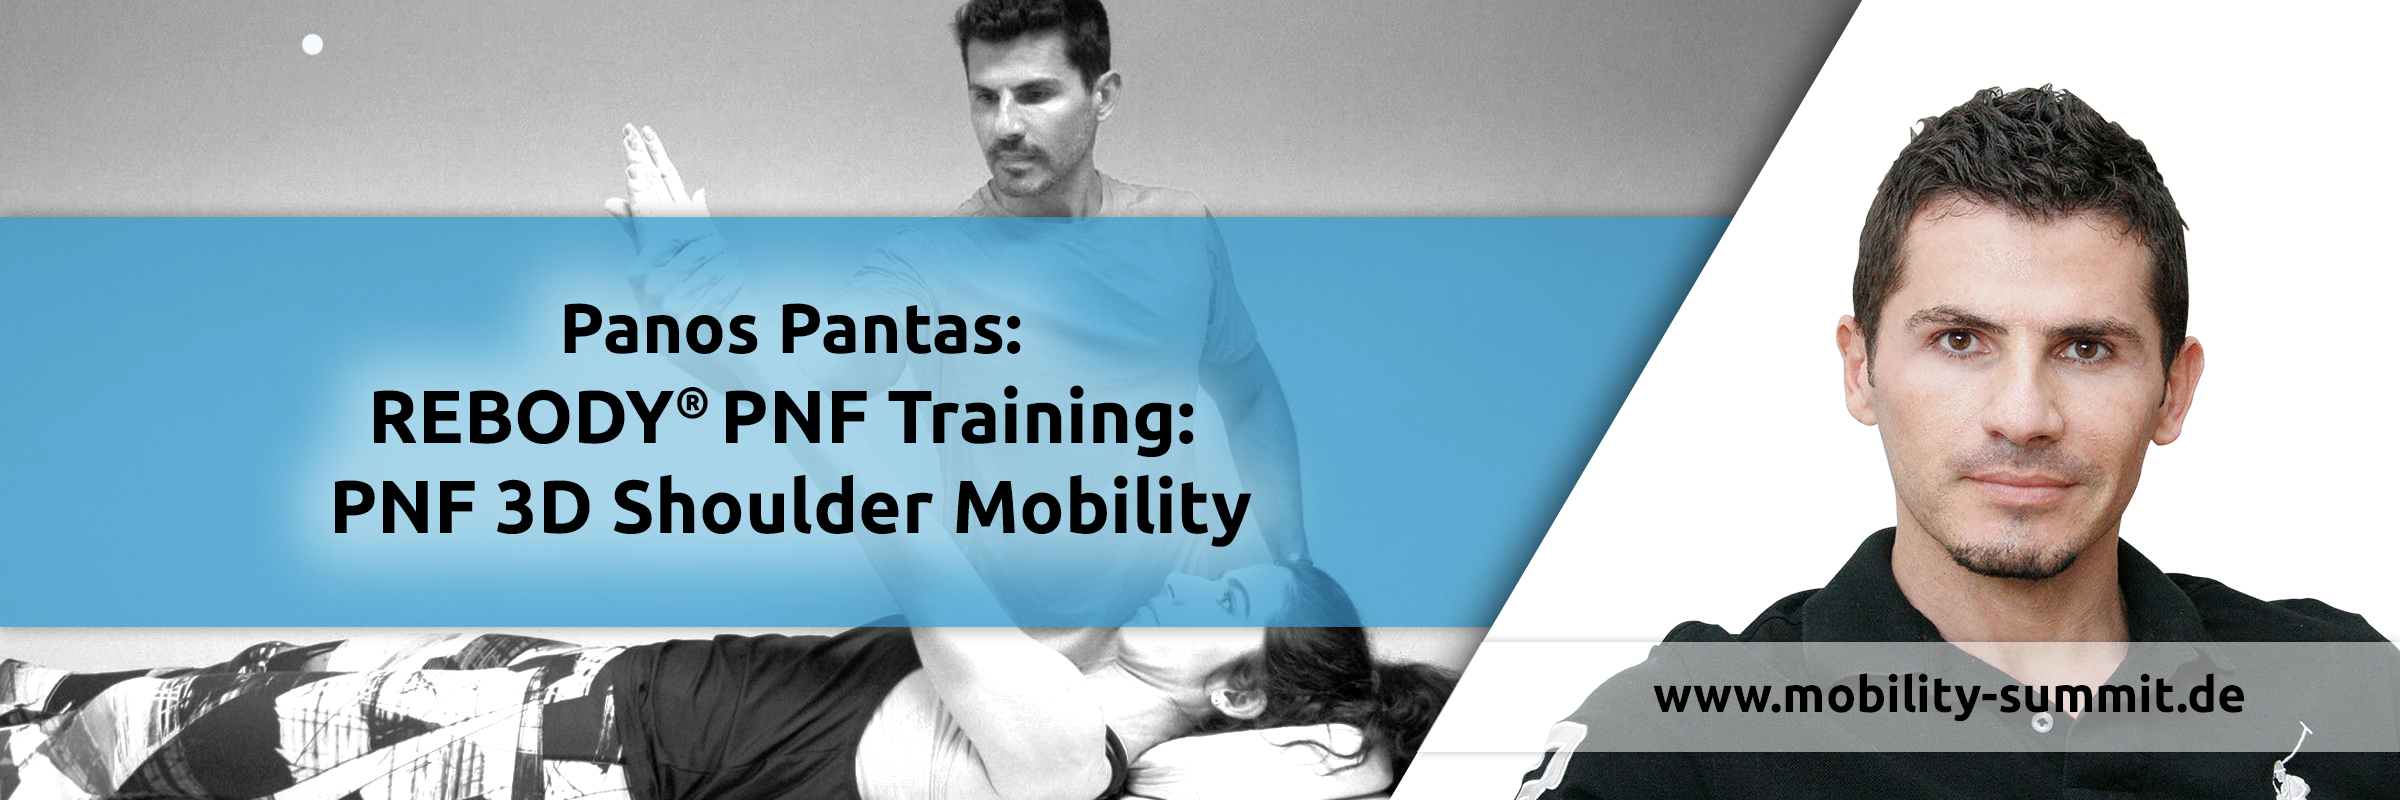 Panos Pantas with REBODY PNF Training